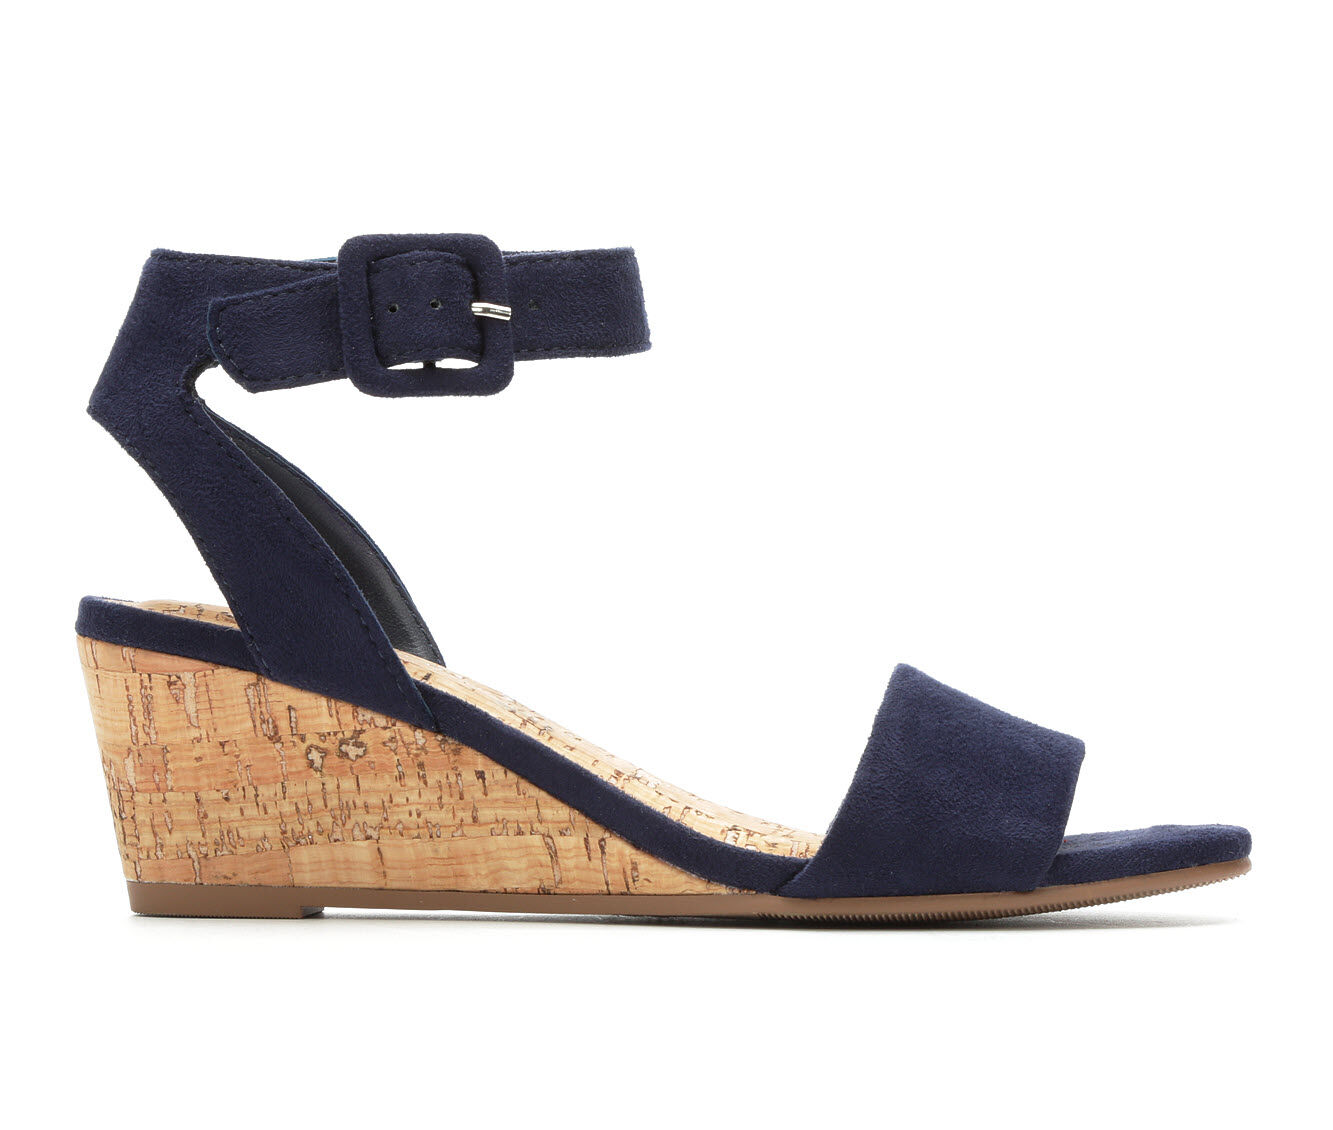 cheapest new style Women's Solanz Ellie Wedge Sandals Navy Micro